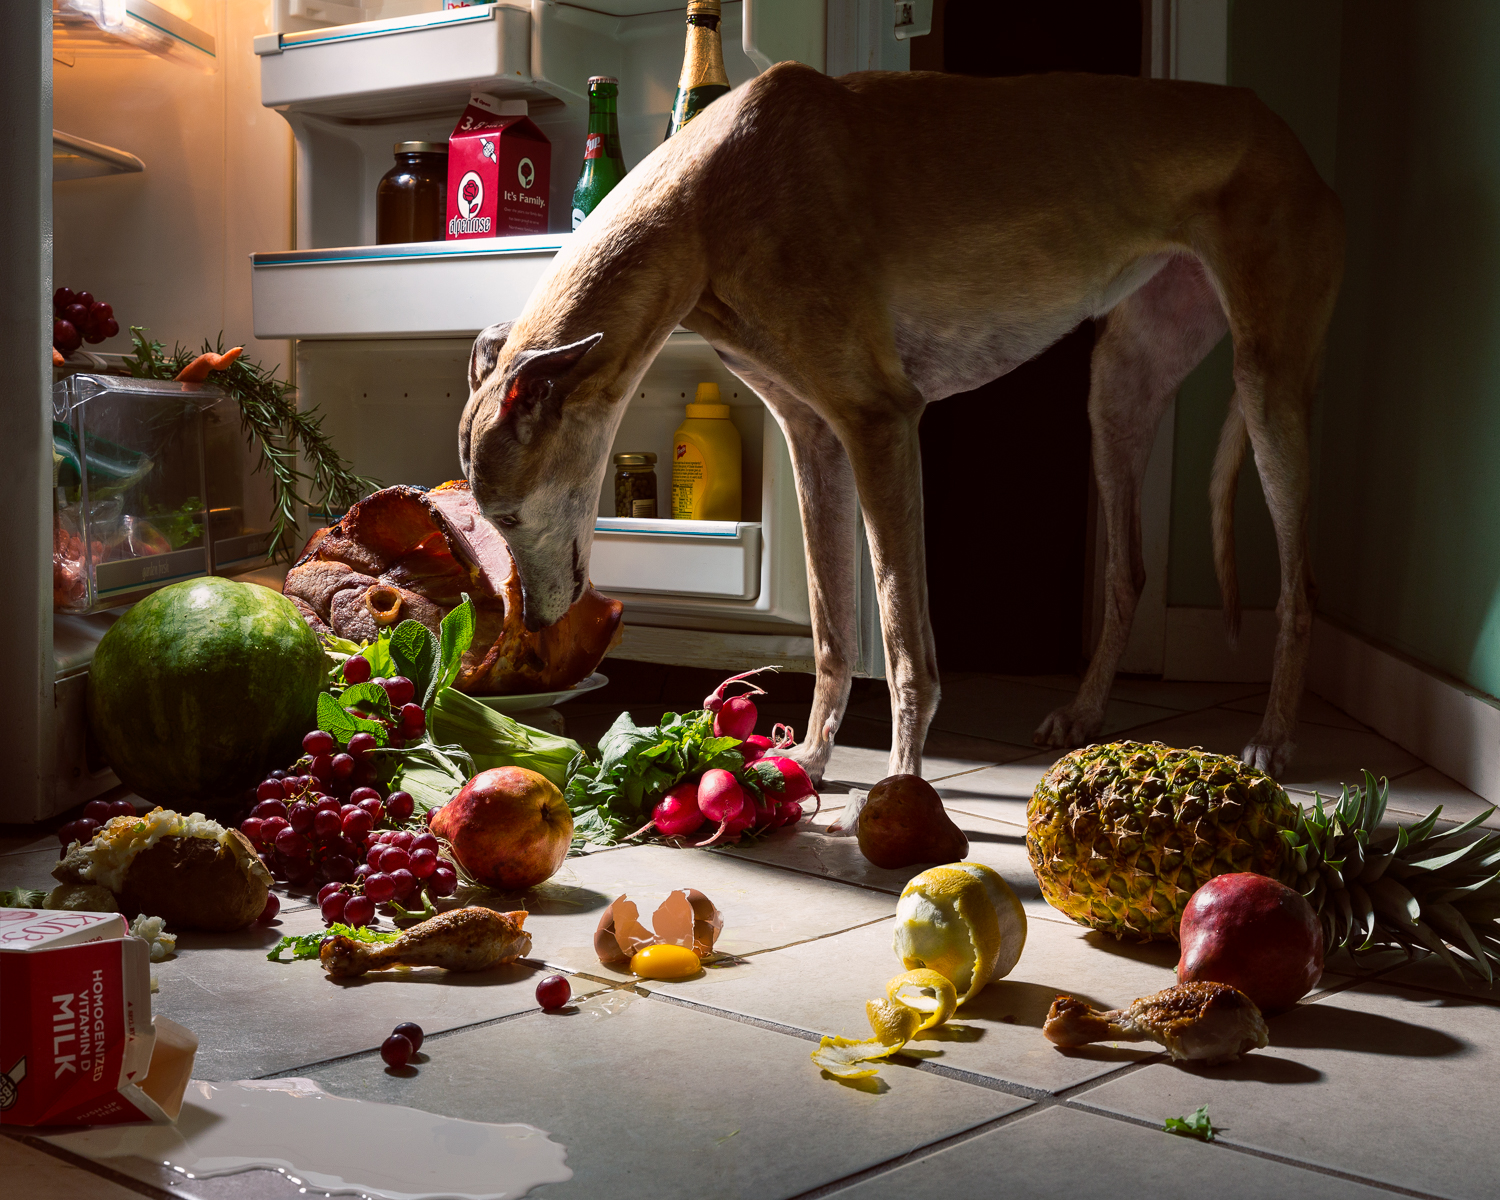 160522_Greyhounds_Midnight Snack_FINAL_1.jpg